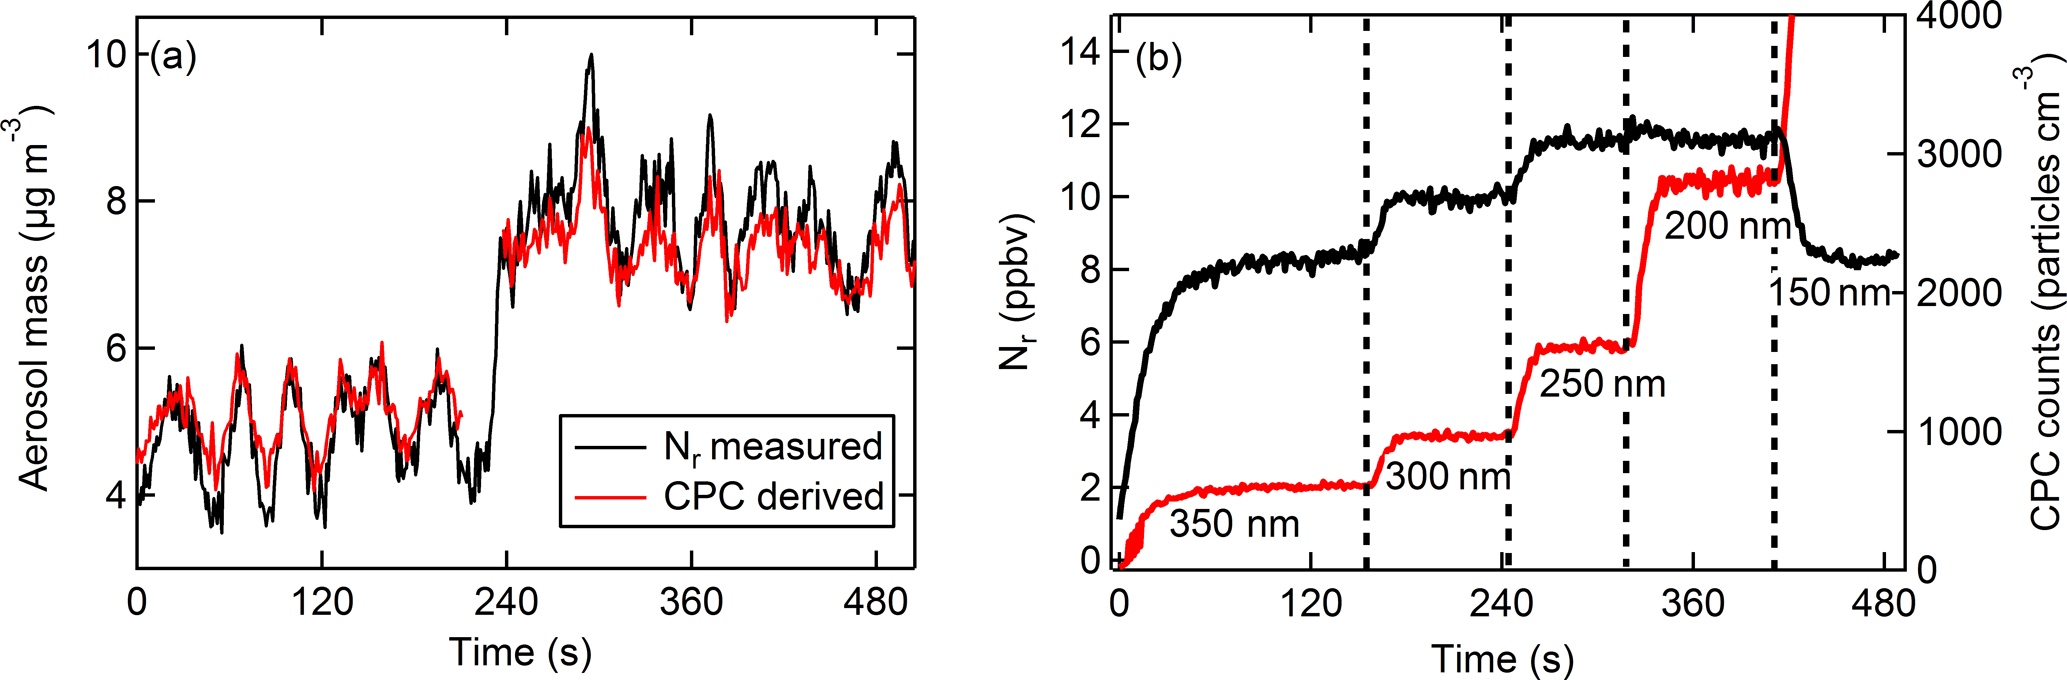 AMT - Characterization of a catalyst-based conversion